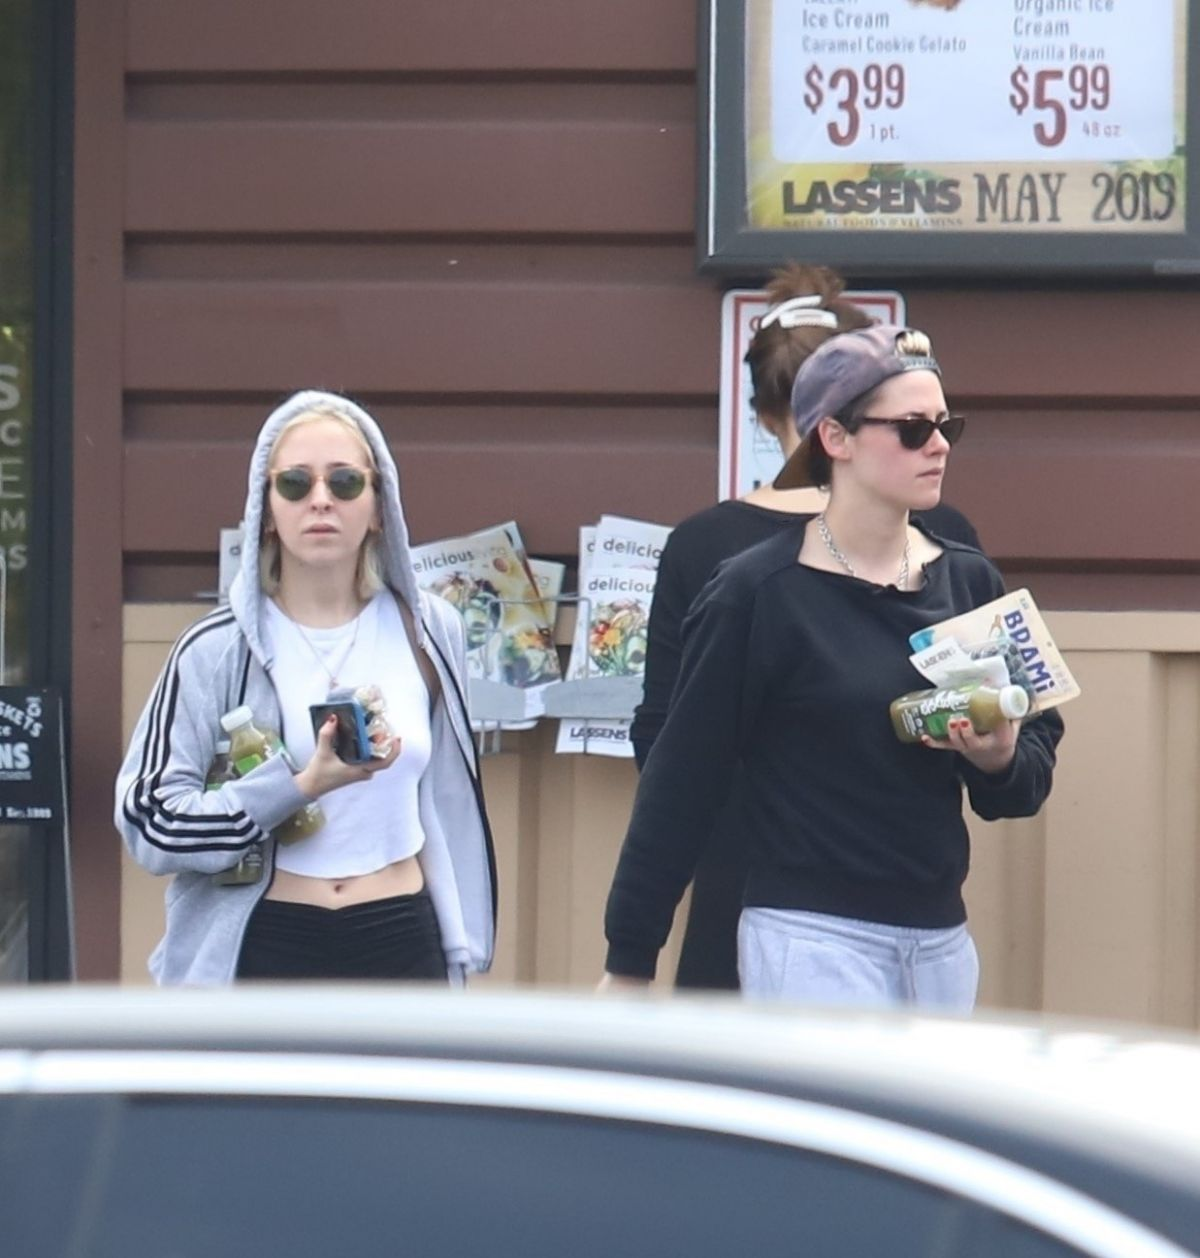 Grocery Stores Los Angeles: KRISTEN STEWART And SARA DINKIN At A Grocery Store In Los